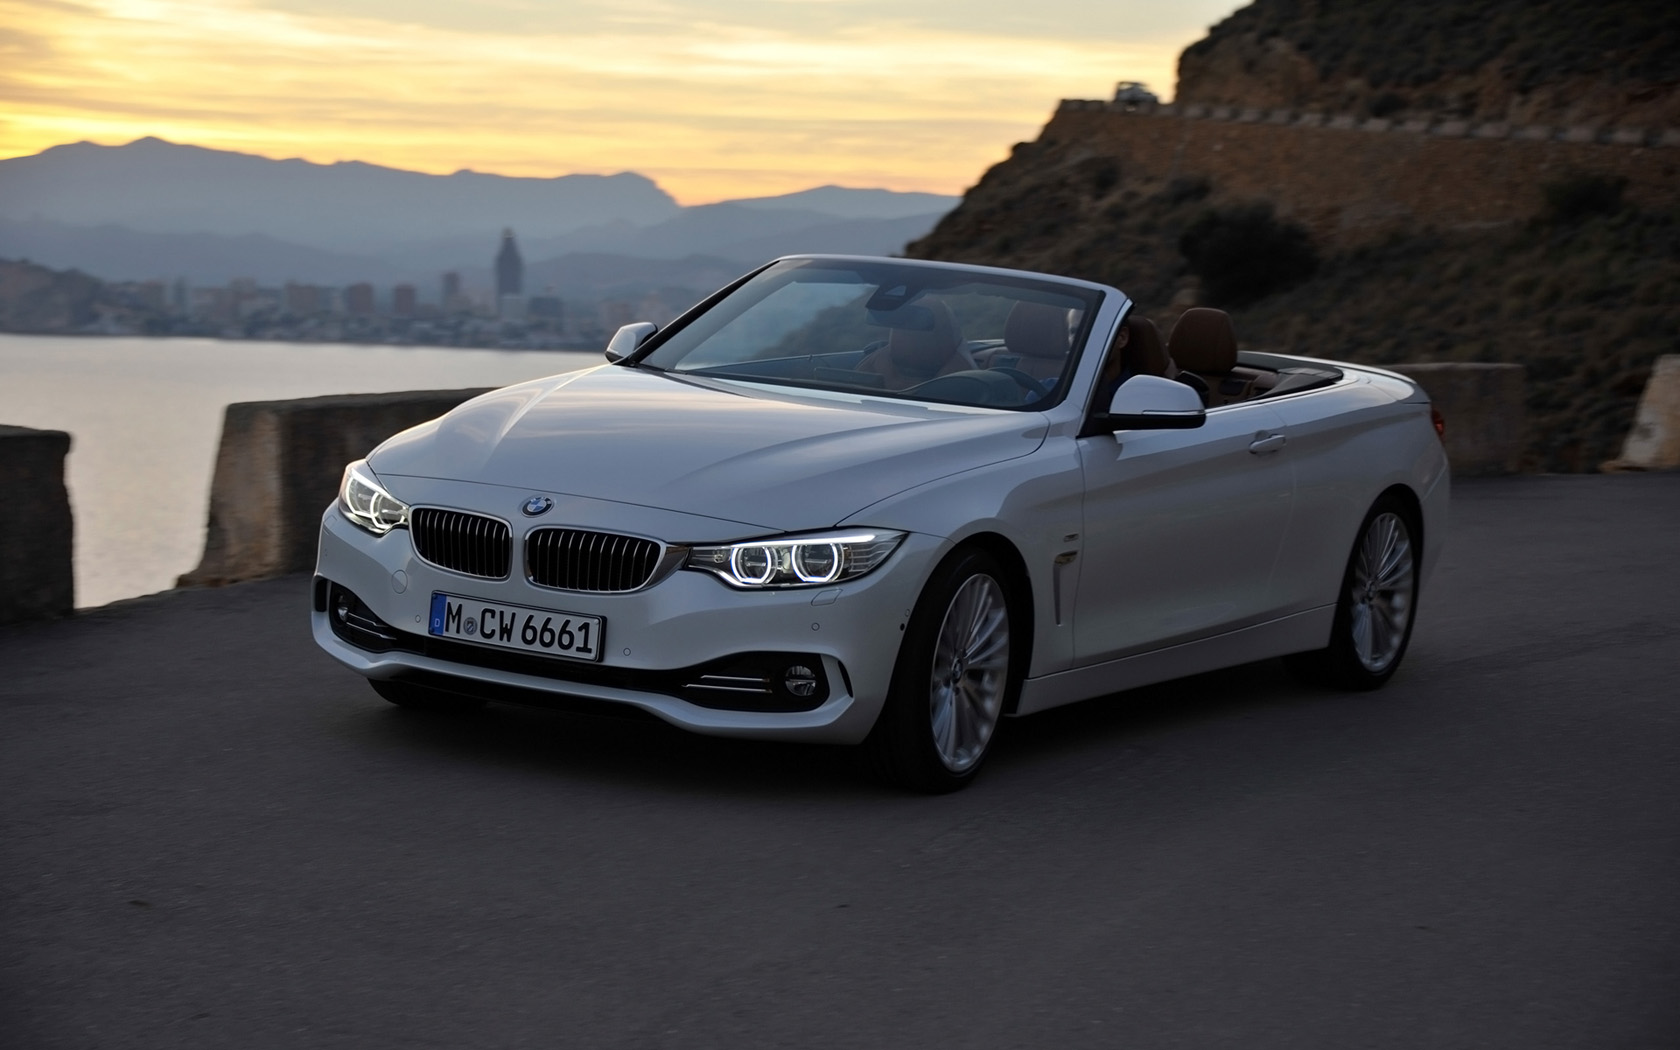 2018 BMW 2 Series Convertible photo - 4